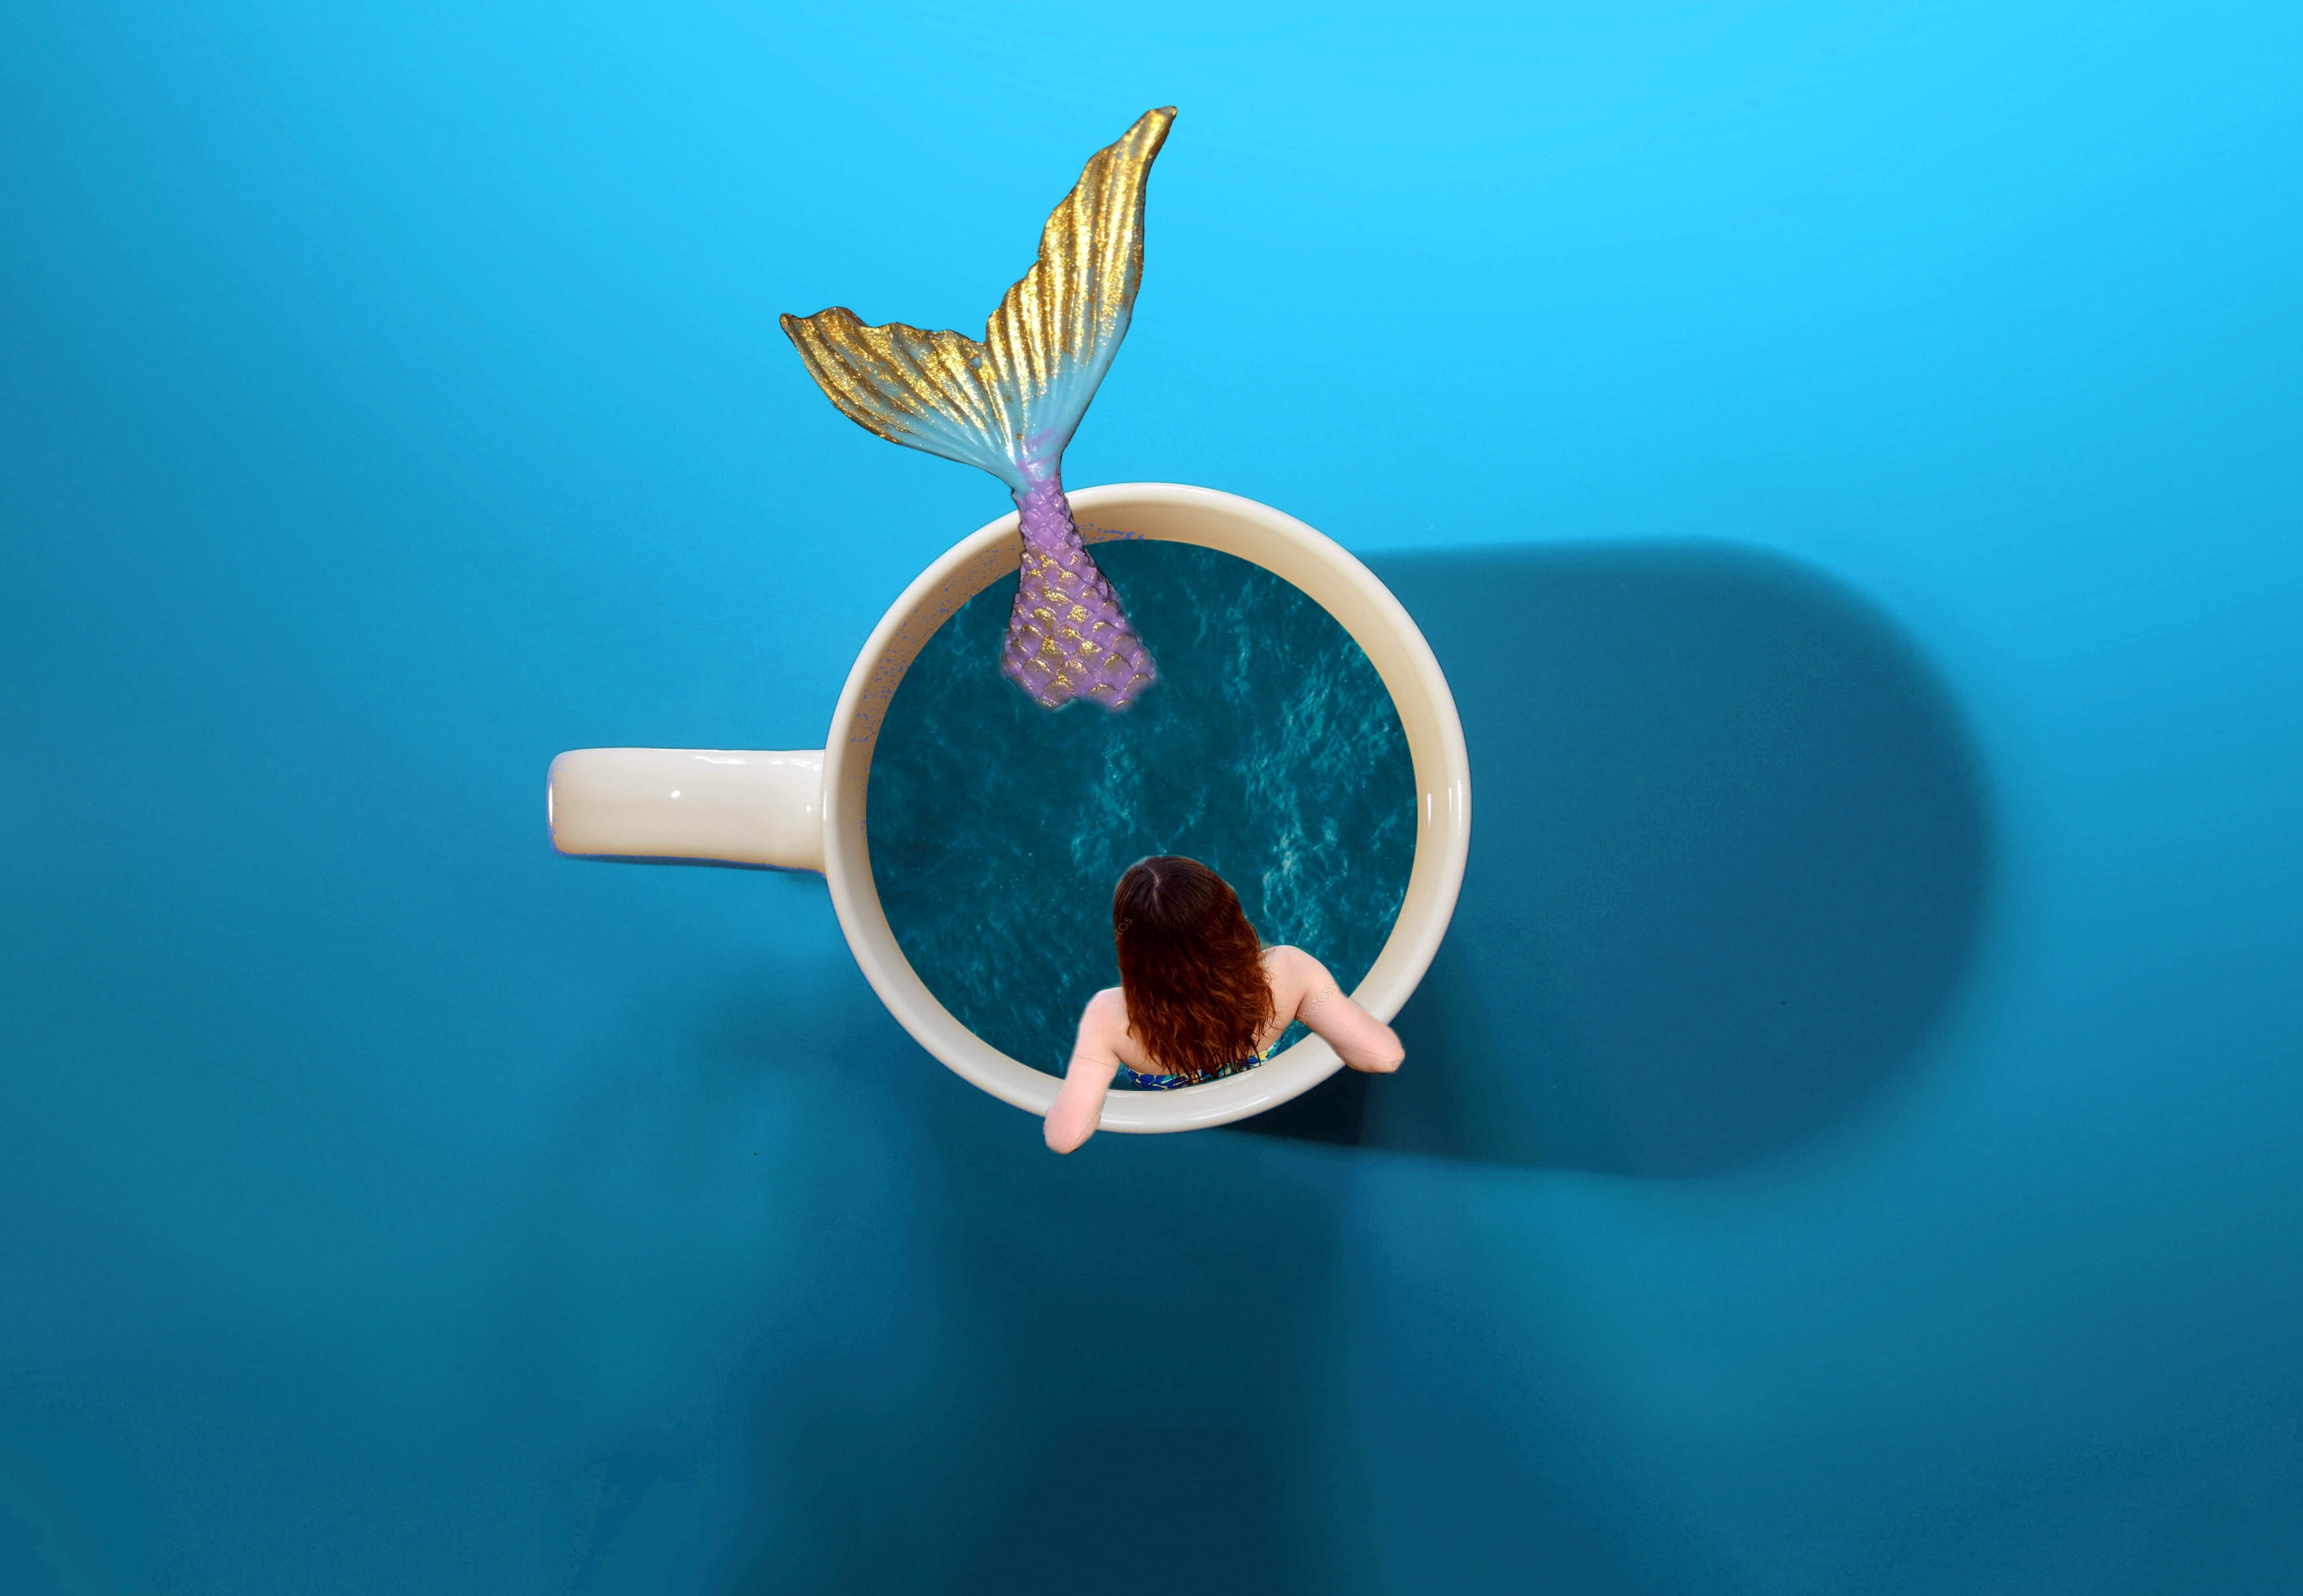 #freetoedit#ircfullonred #fullonred #mermaid #sea #cup #coffee #coffeecup #blue #girl #picoftheday